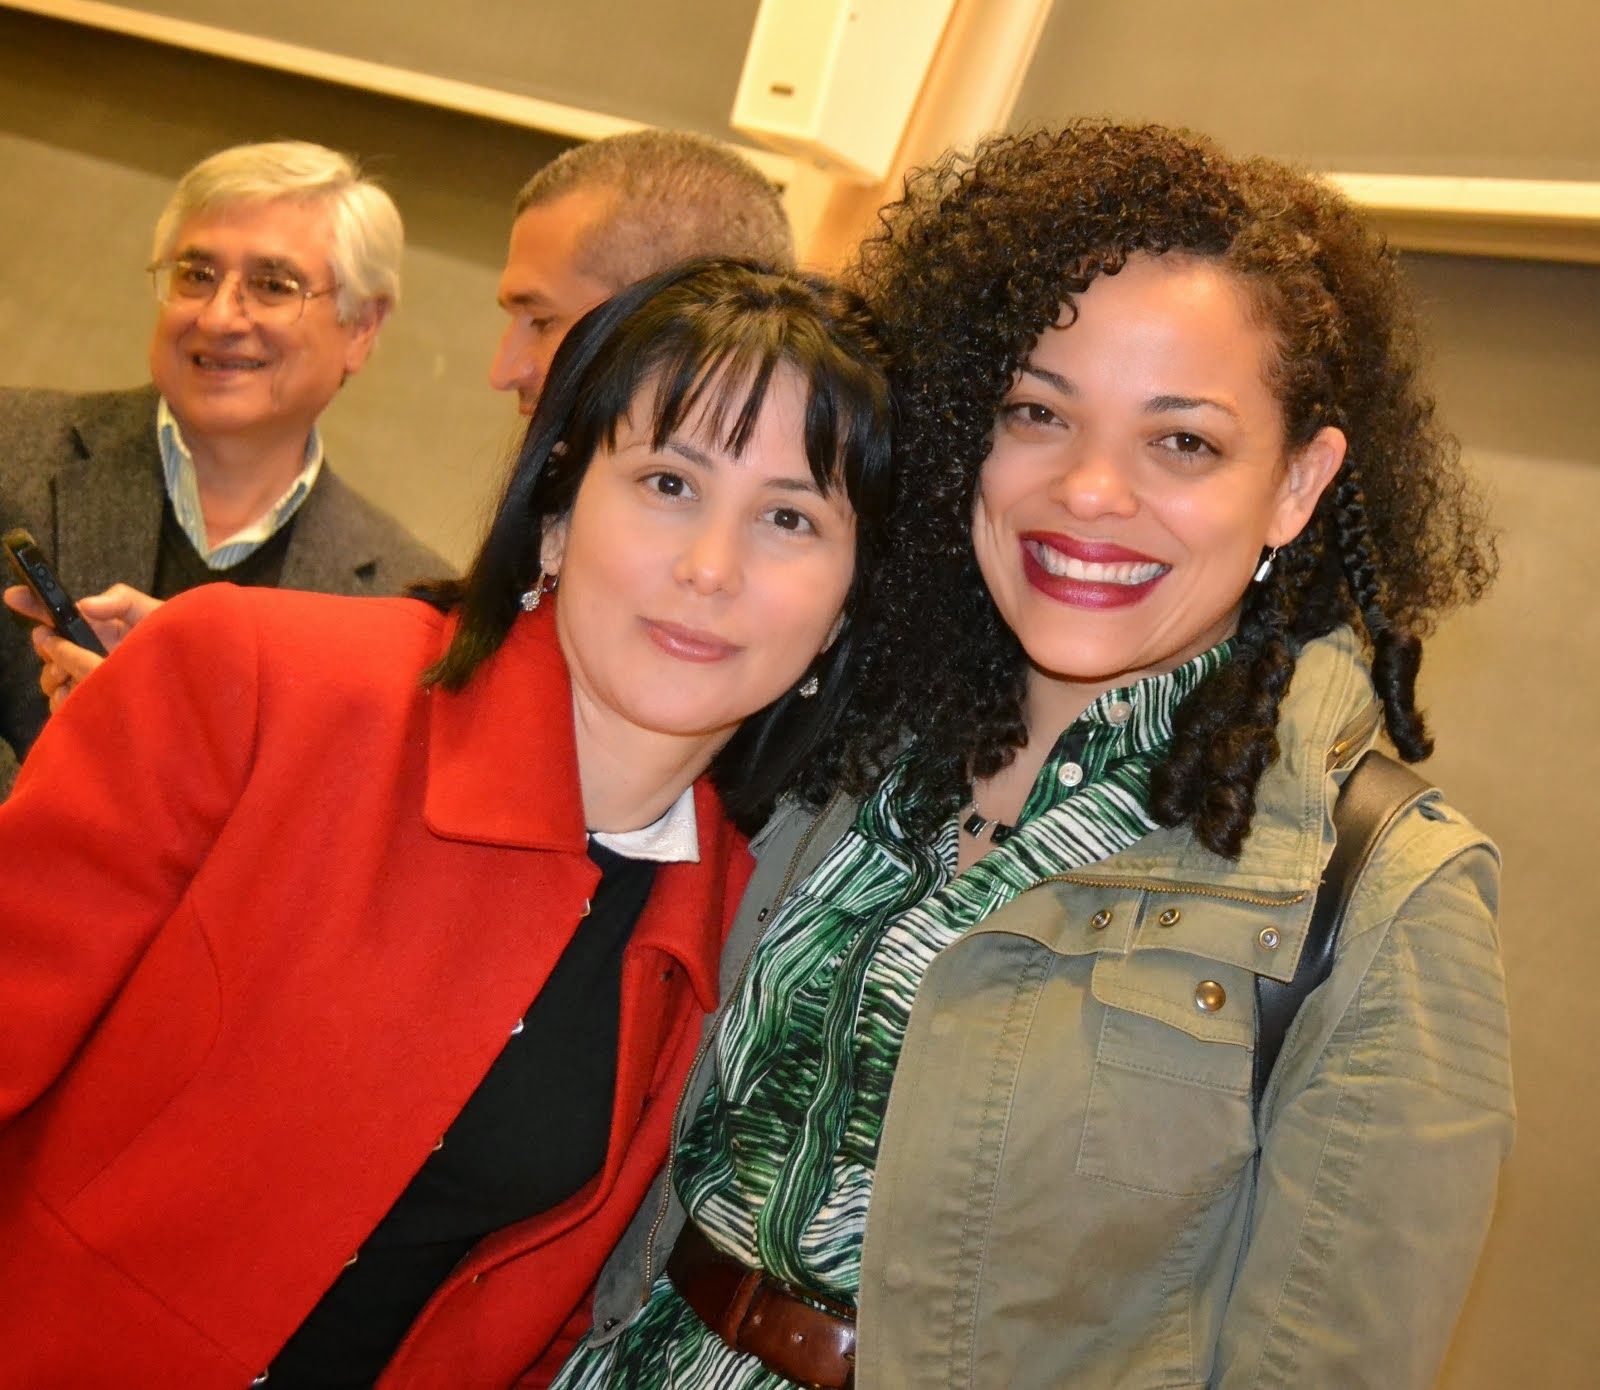 Con Wendy Guerra @ Dartmouth College (oct. 2013)